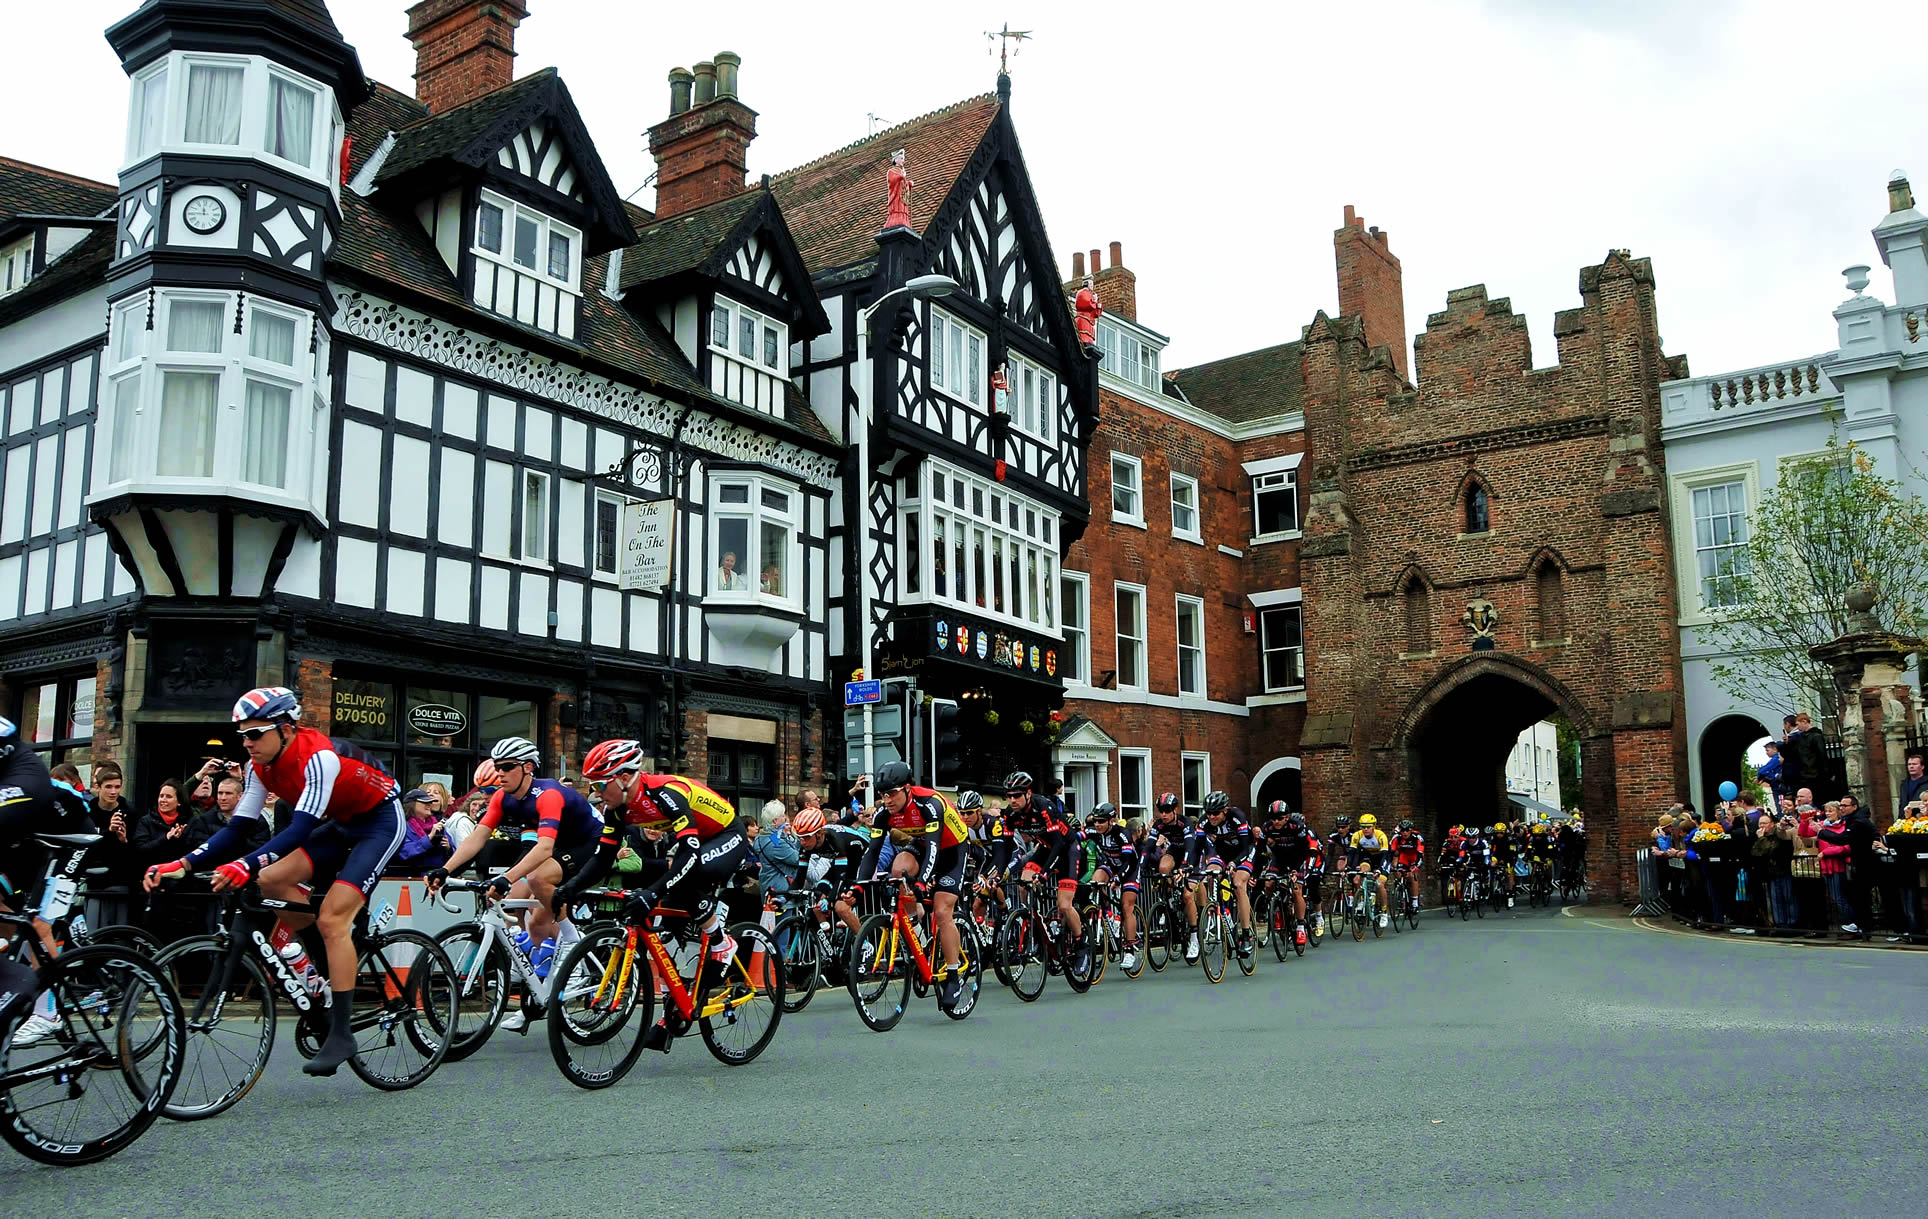 Tour de Yorkshire riders passing through North Bar in Beverley